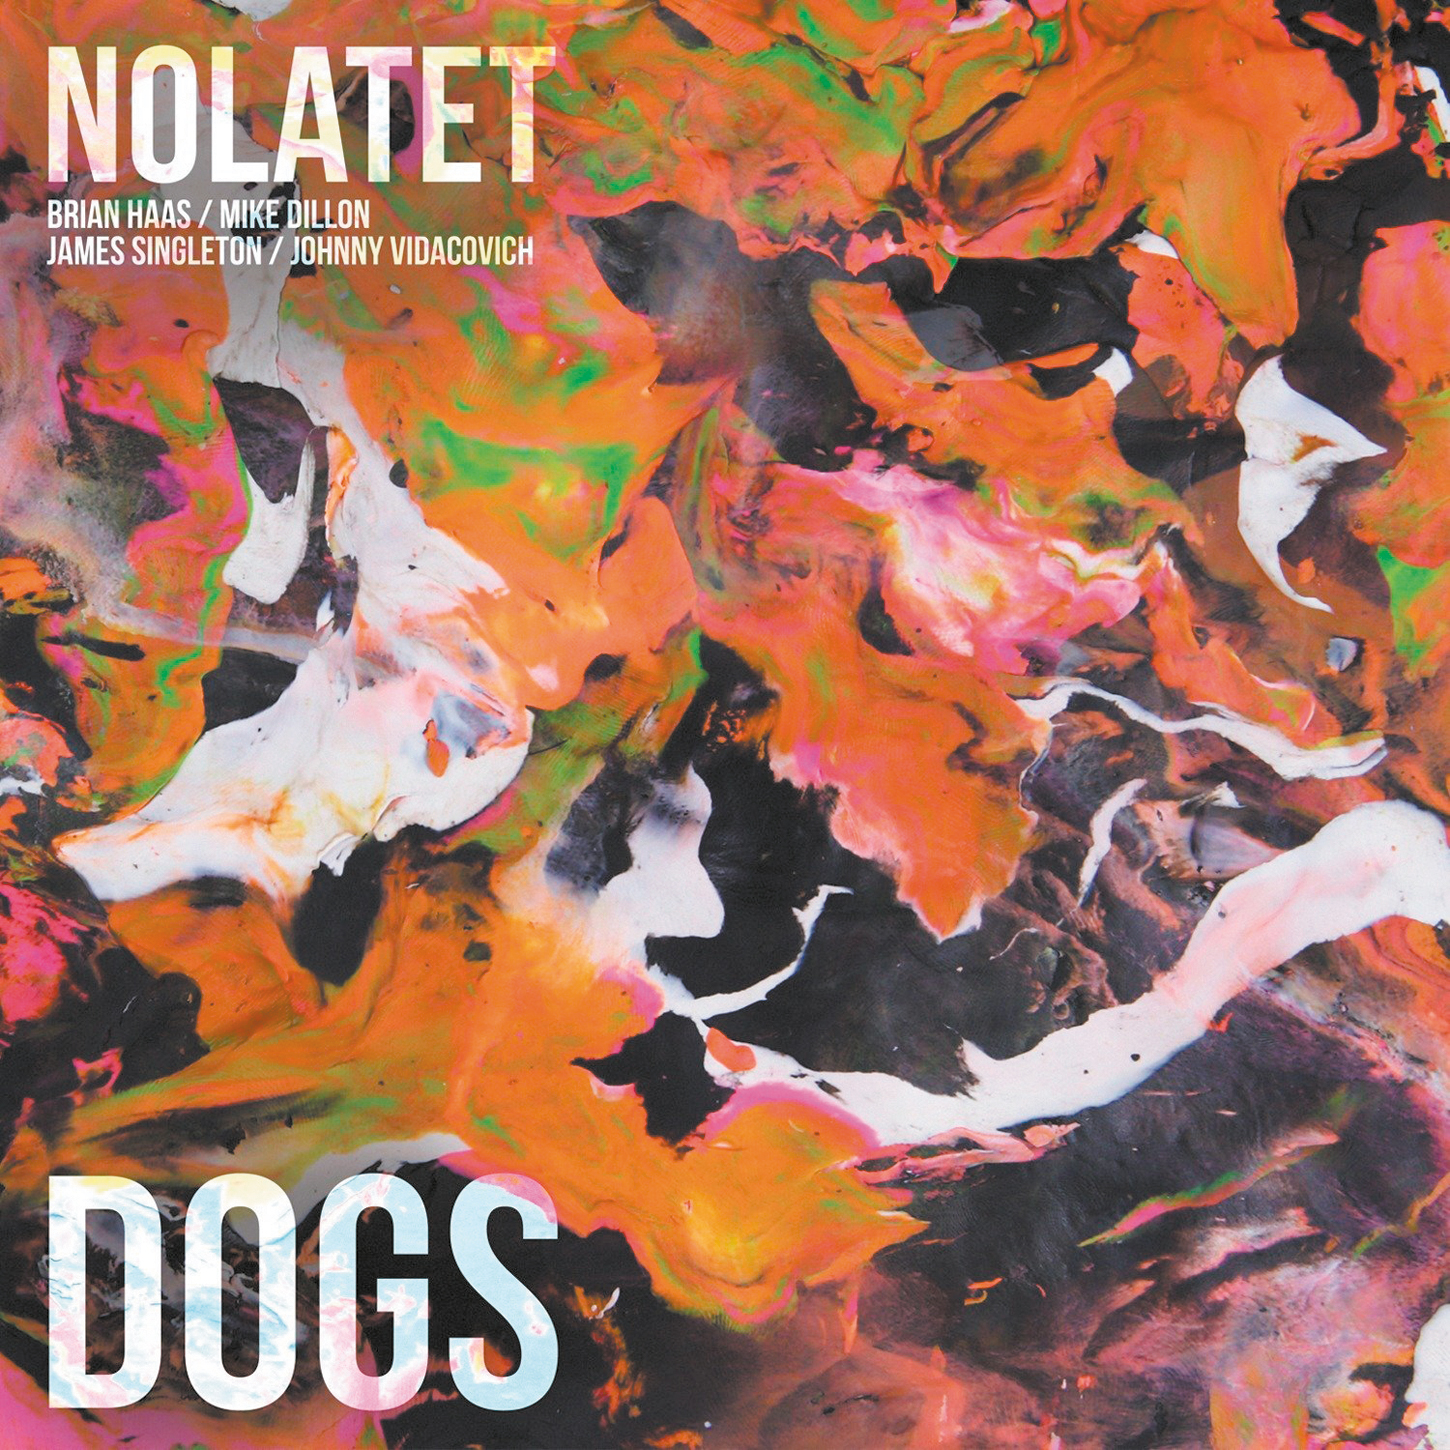 Nolatet-022216